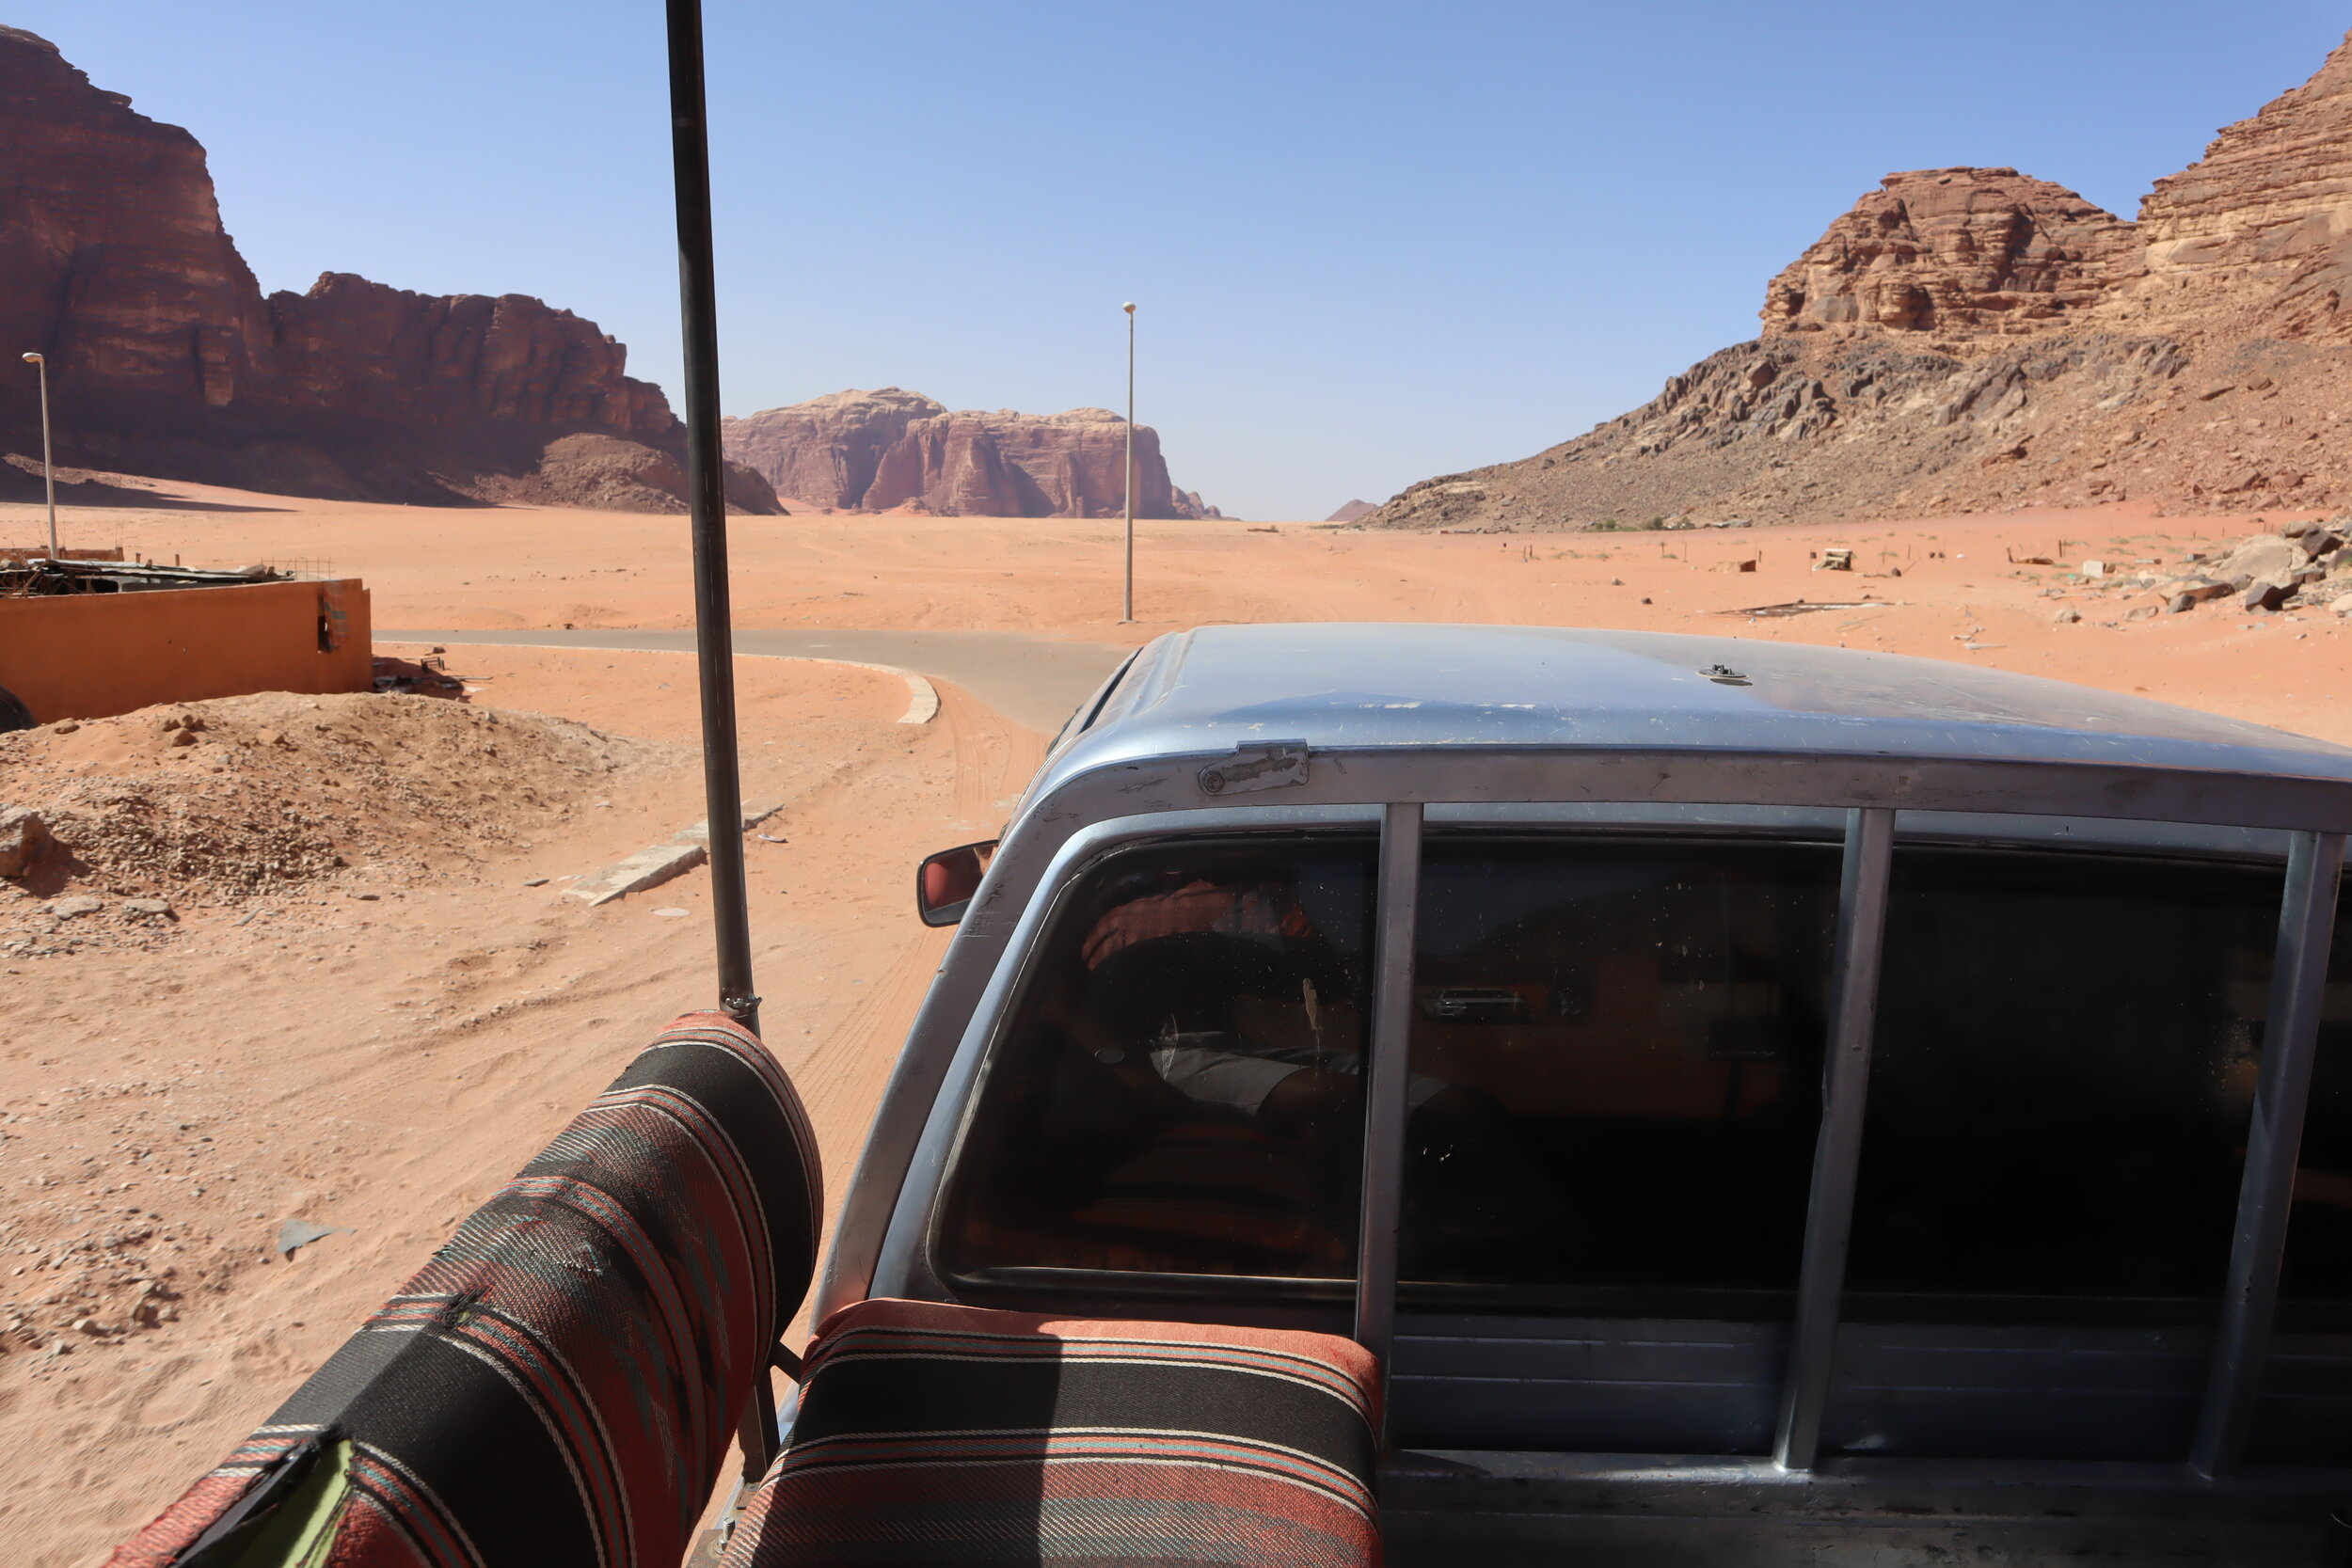 Driving into Wadi Rum Protected Area